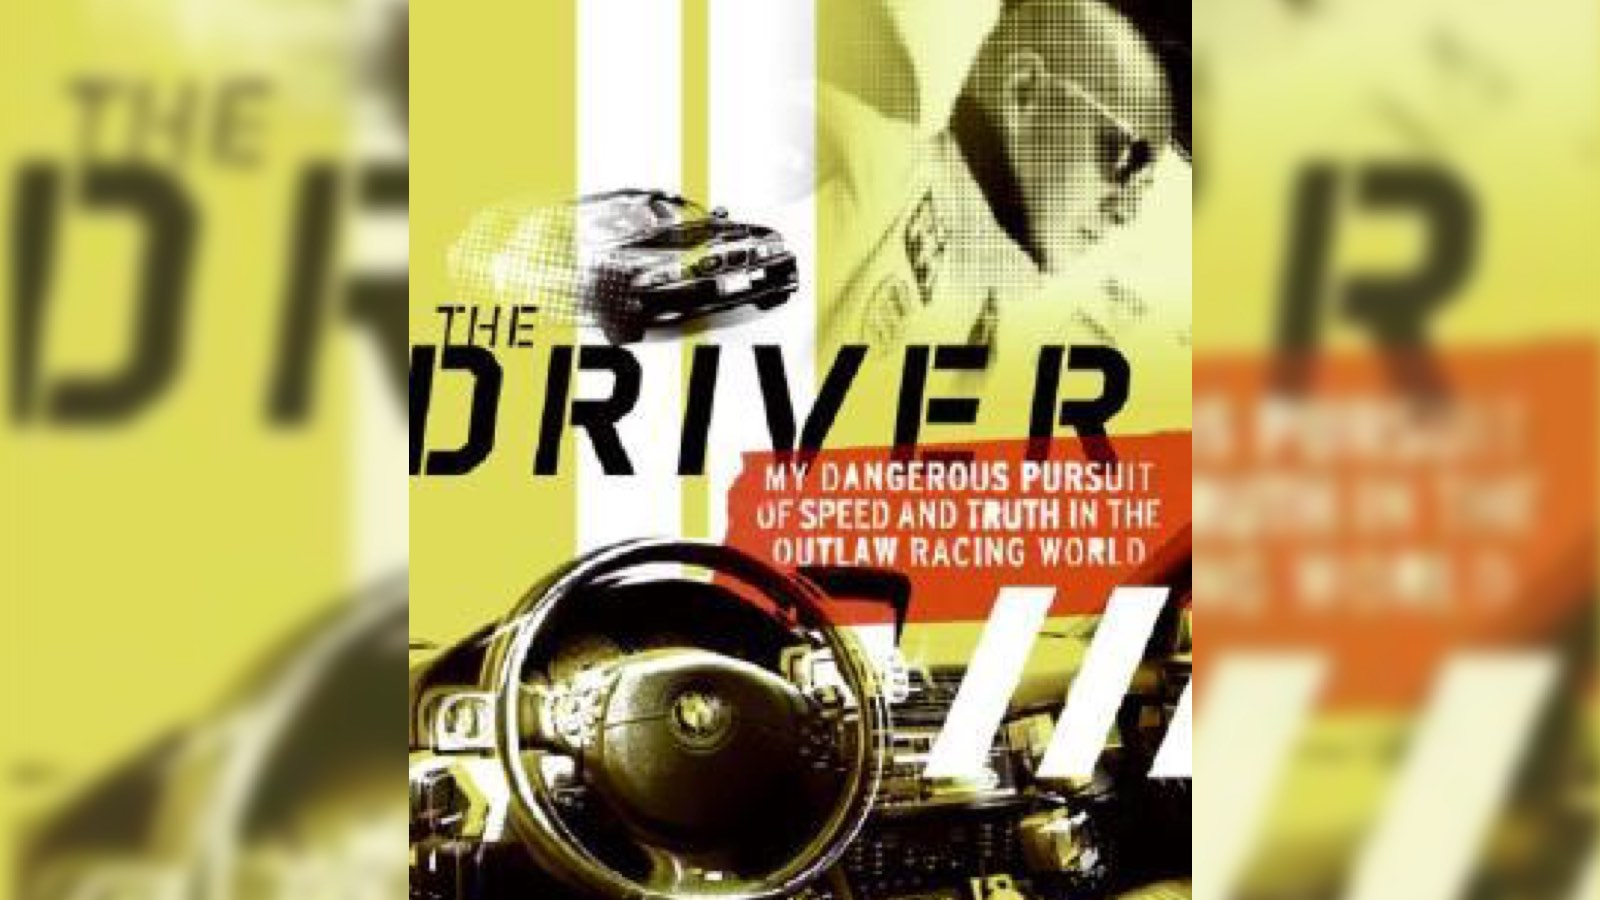 The Driver - By Alex Roy